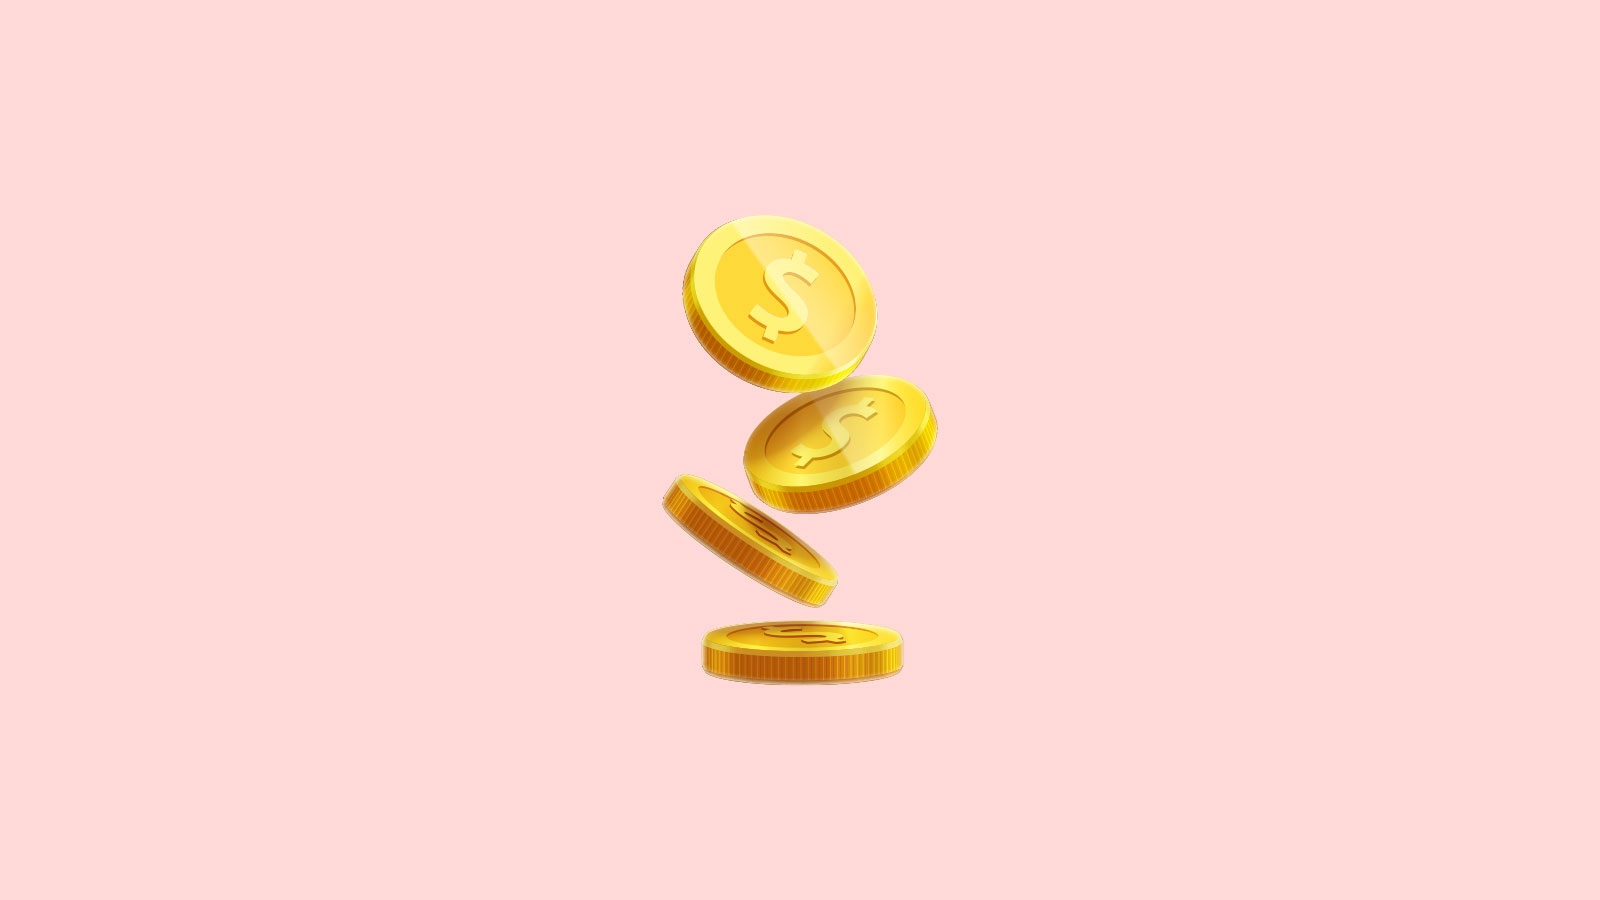 3D coins on a pink background